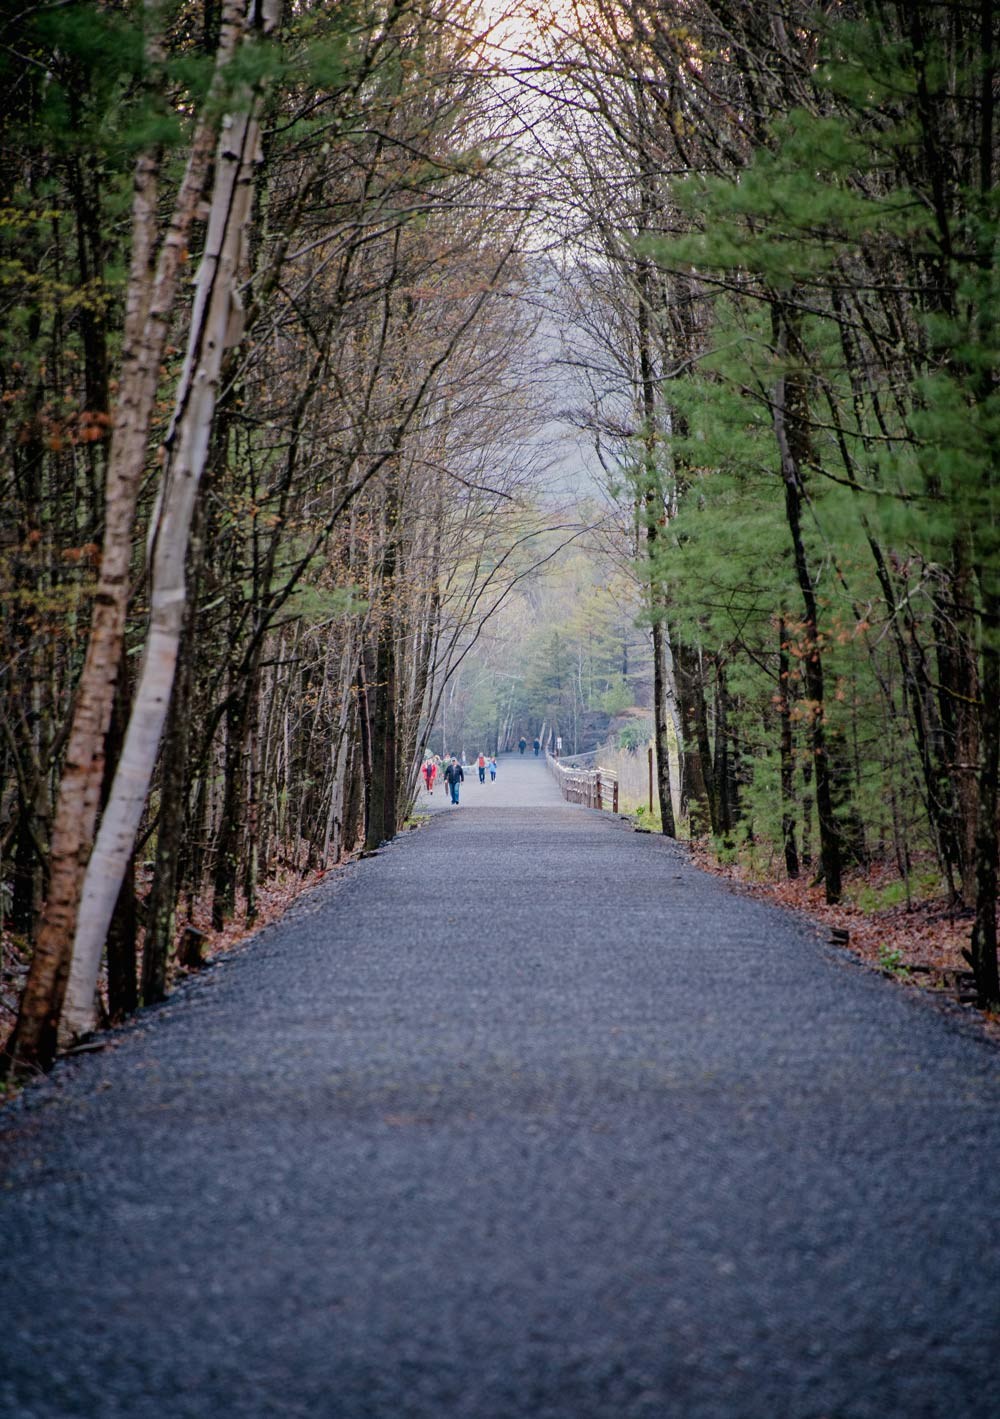 Detailed image of Rail trail pathway